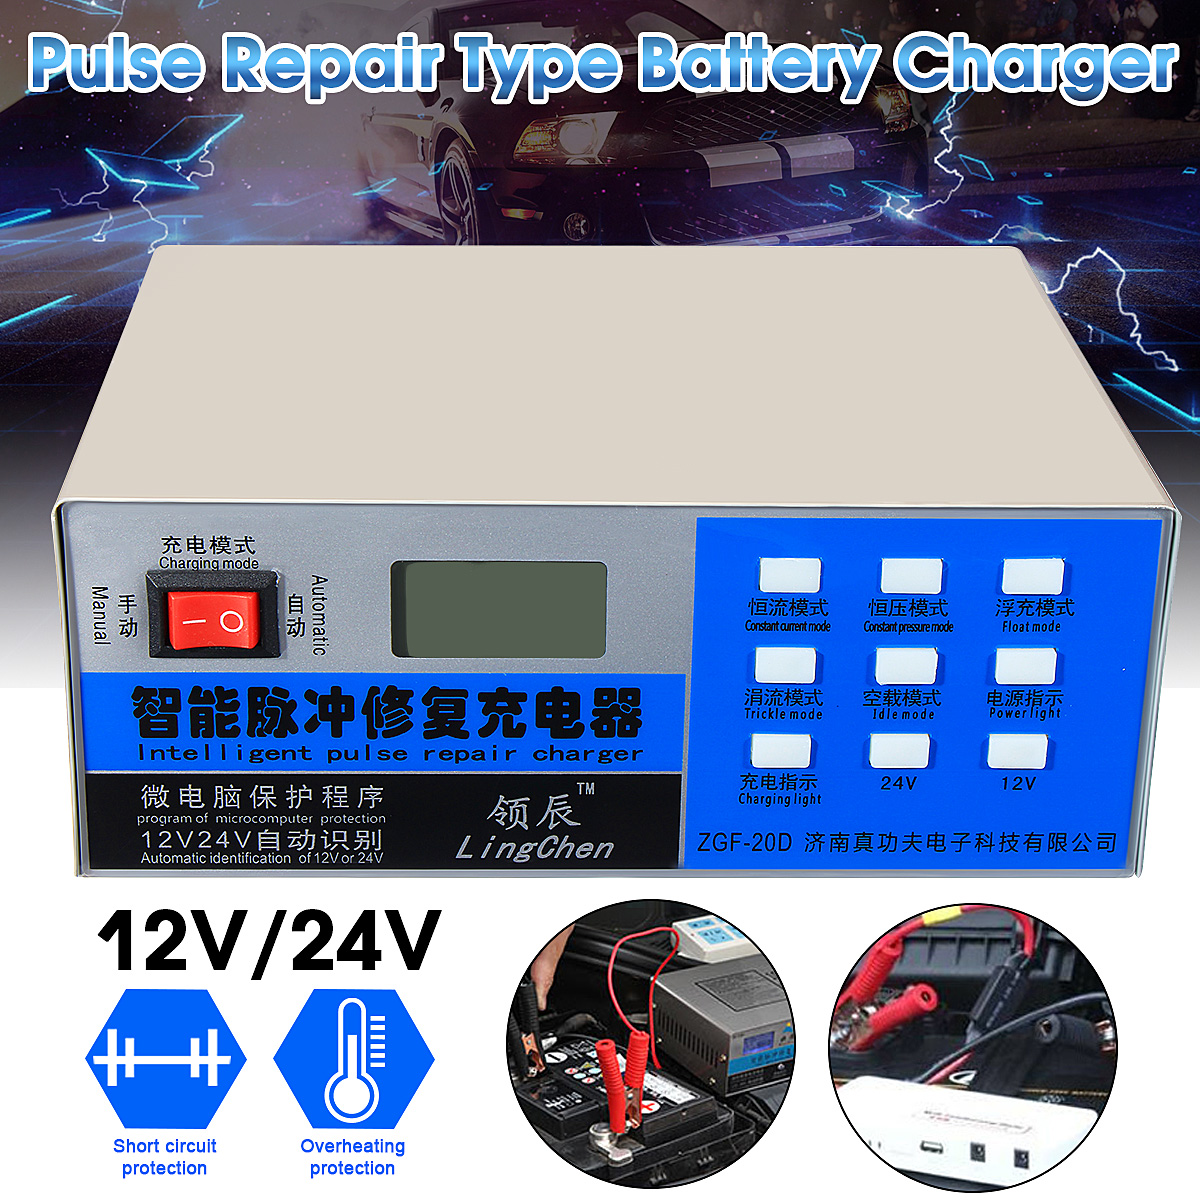 <font><b>12V</b></font>/24V <font><b>200AH</b></font> Electric Car Dry Wet <font><b>Battery</b></font> <font><b>Charger</b></font> Automatic Intelligent Pulse Repair Type Car Jump LCD Display image